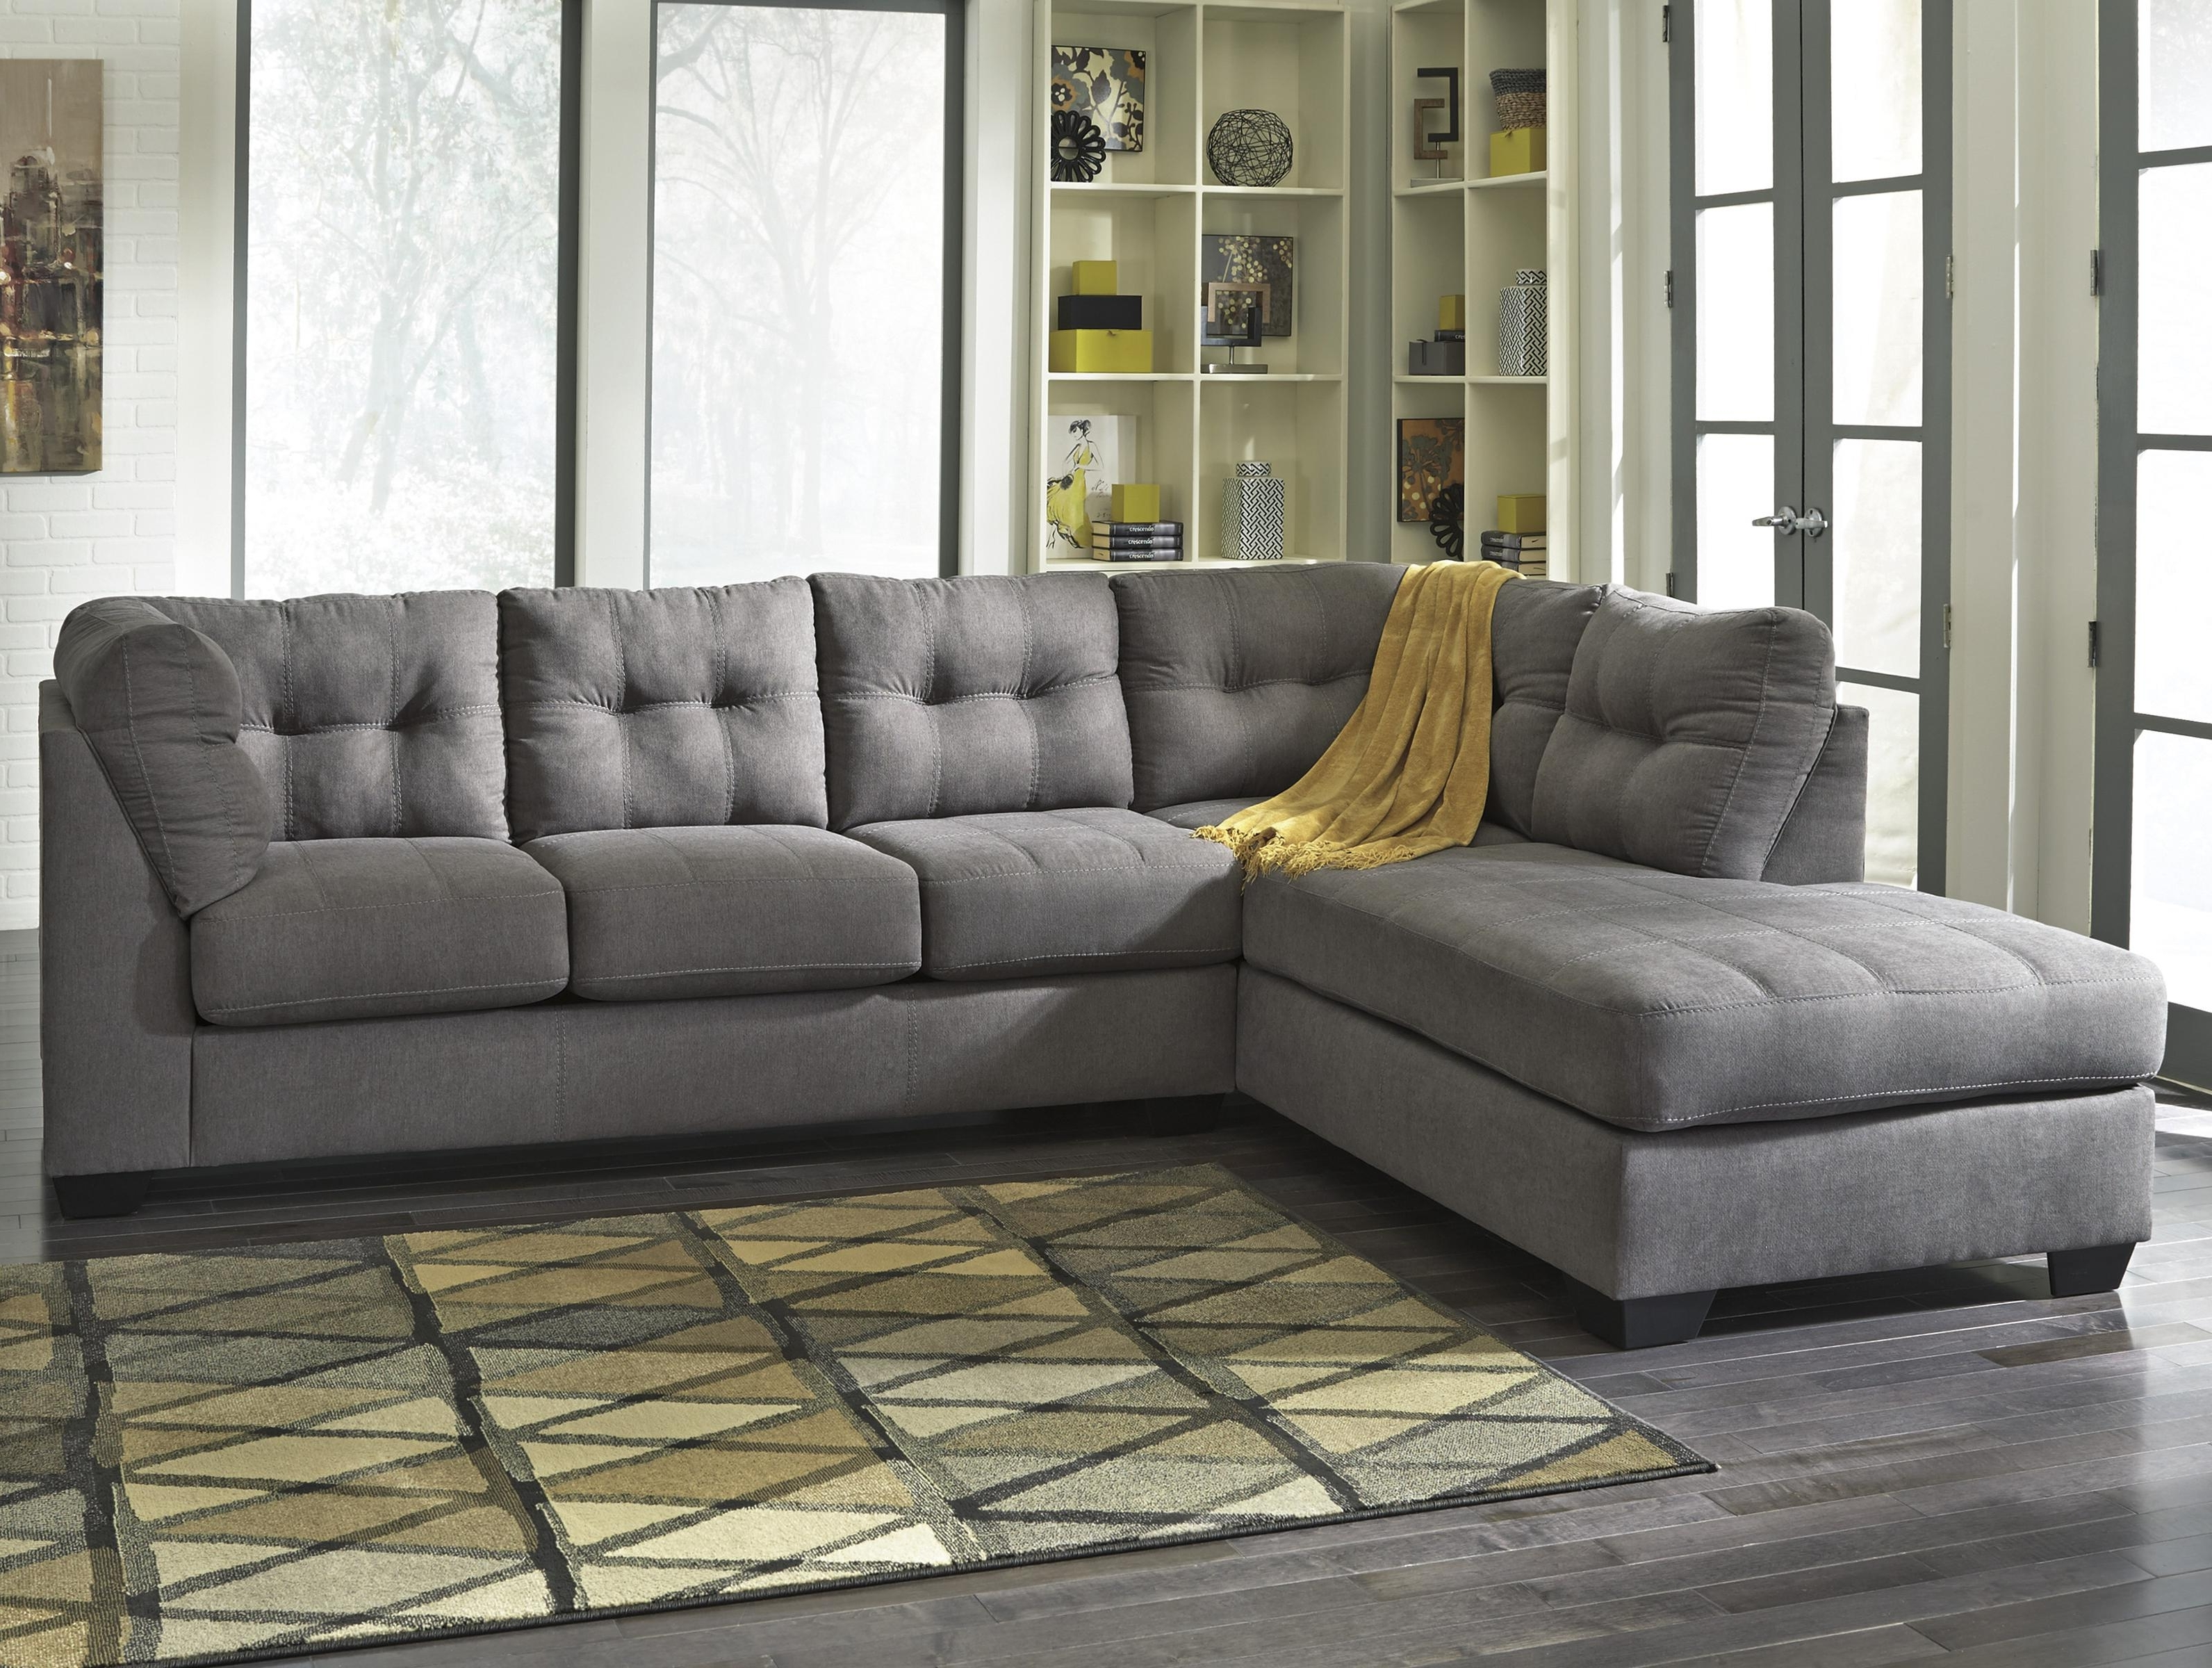 Famous Reversible Chaise Sectionals For Sleeper Sectional With Reversible Chaise Combination Recliner (View 4 of 15)